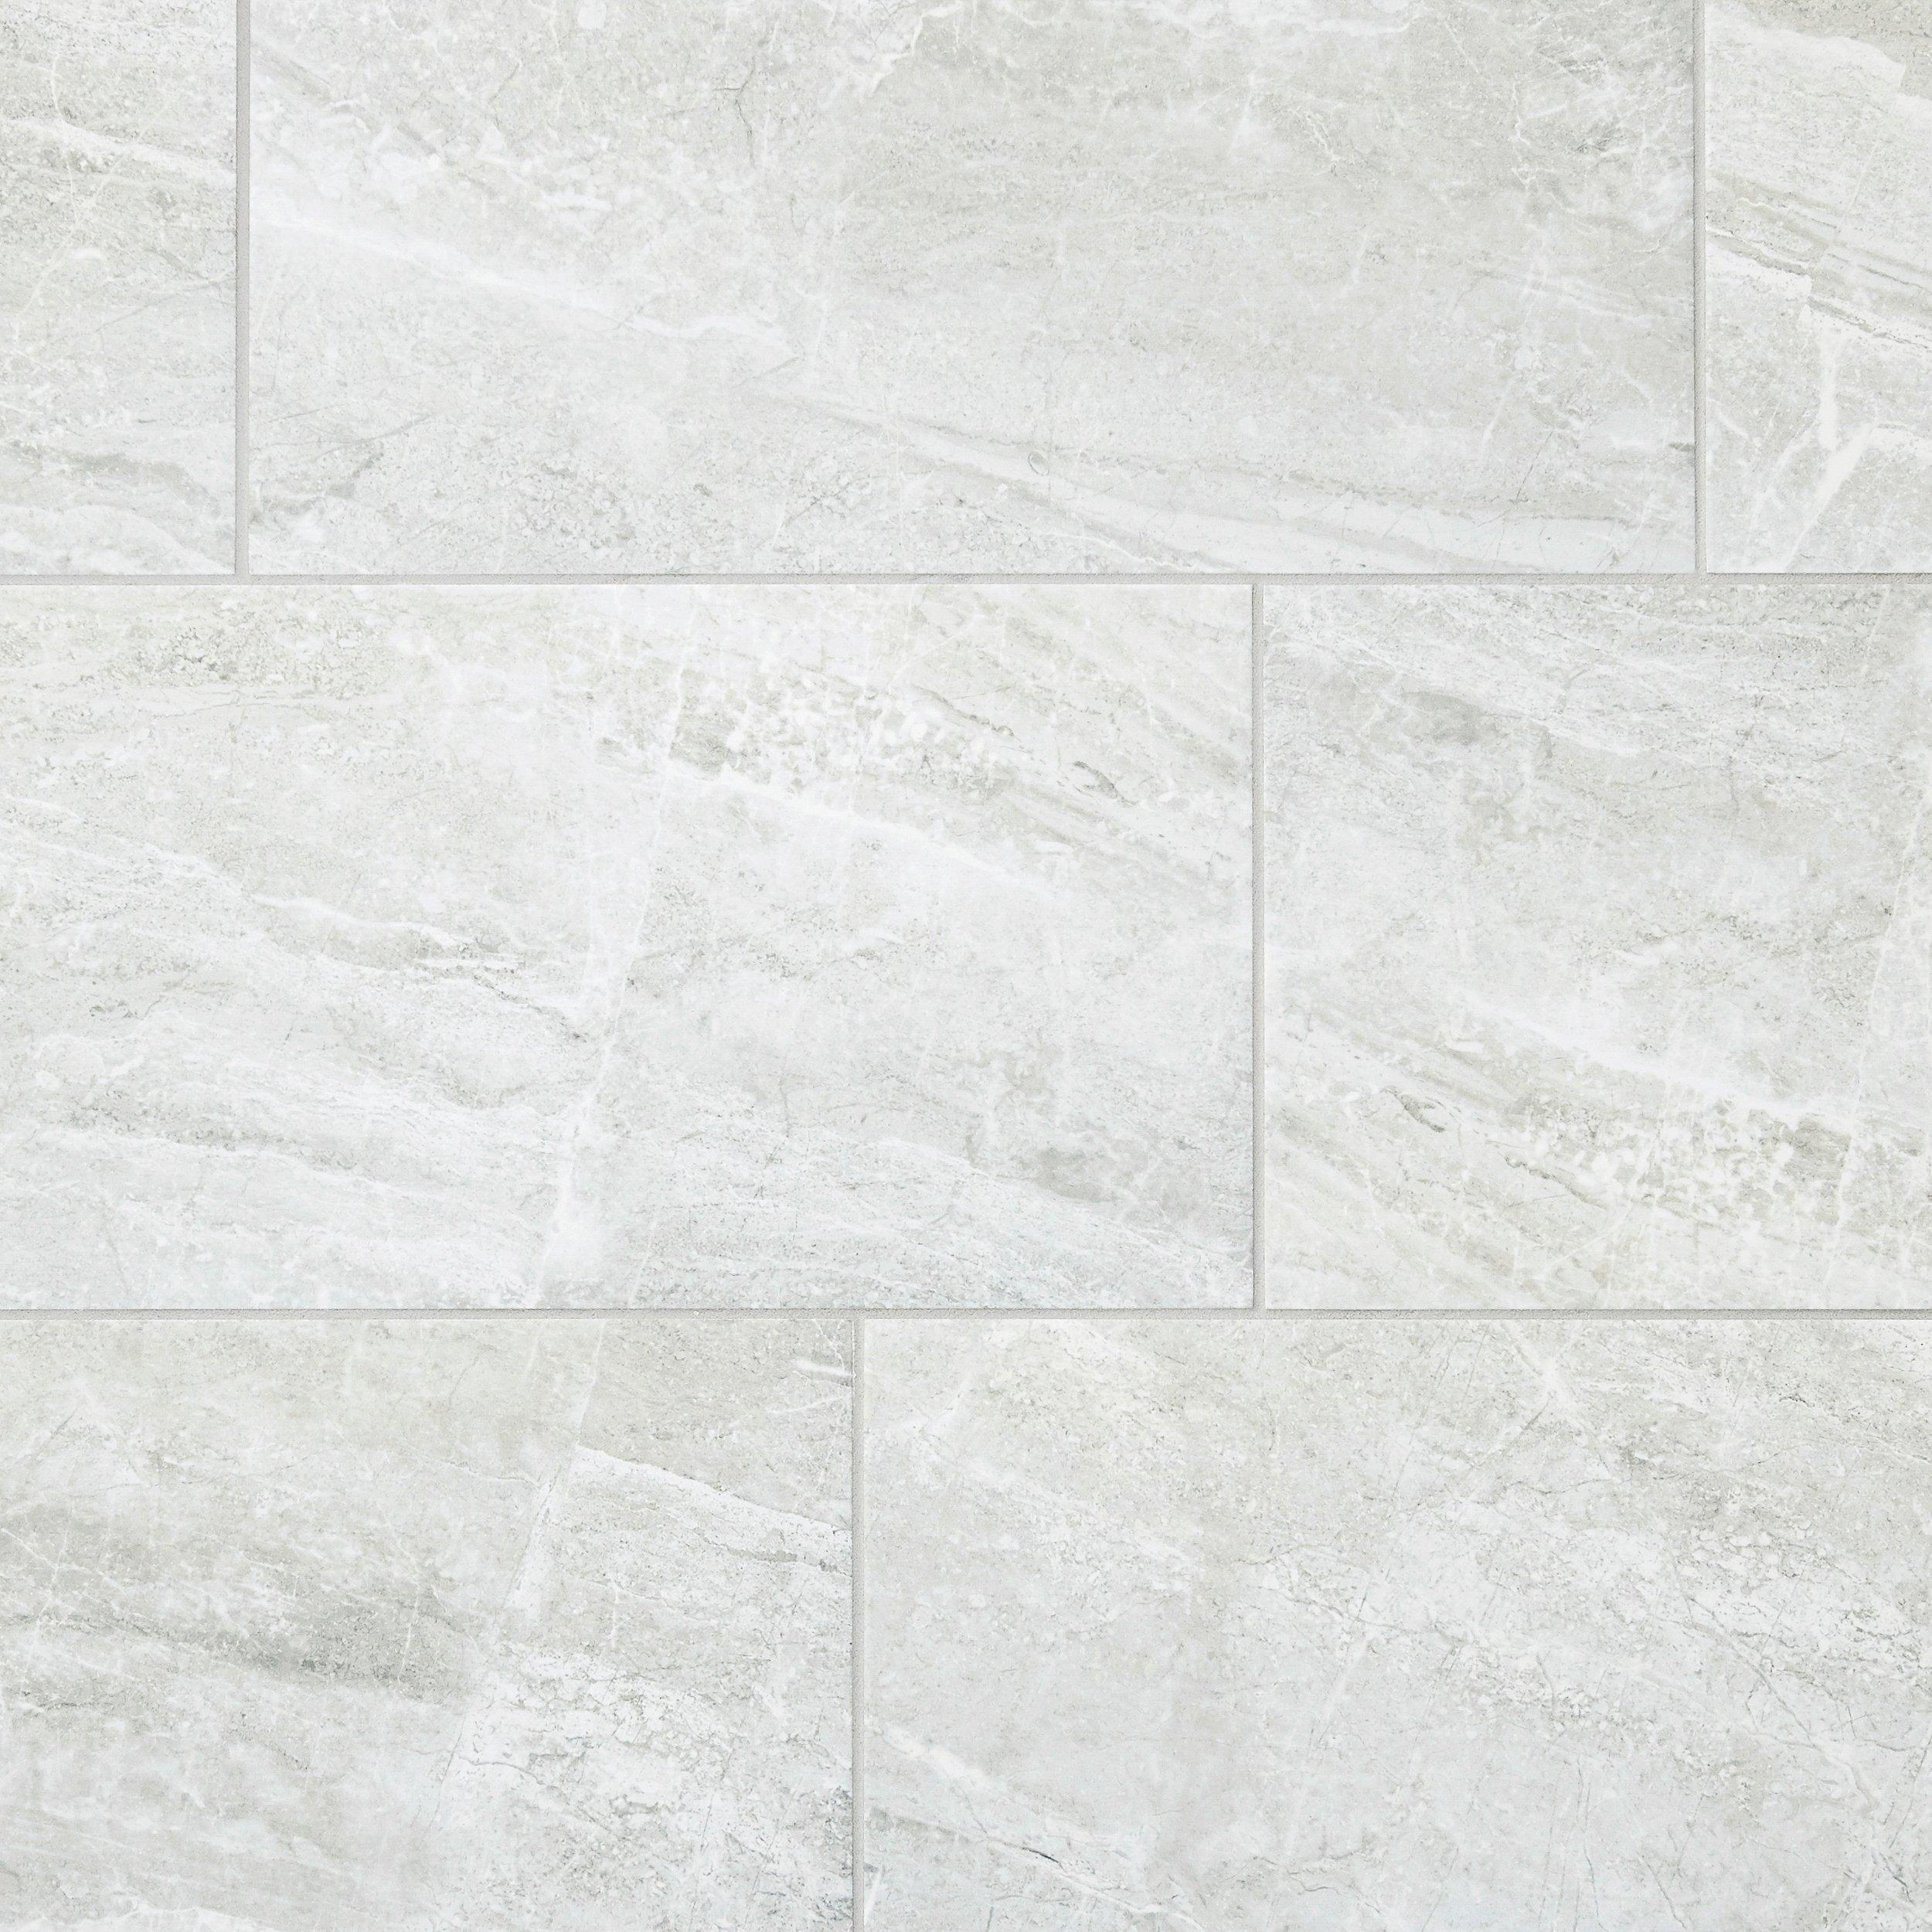 Nepal gray porcelain tile 12 x 24 100248103 floor and decor dailygadgetfo Images